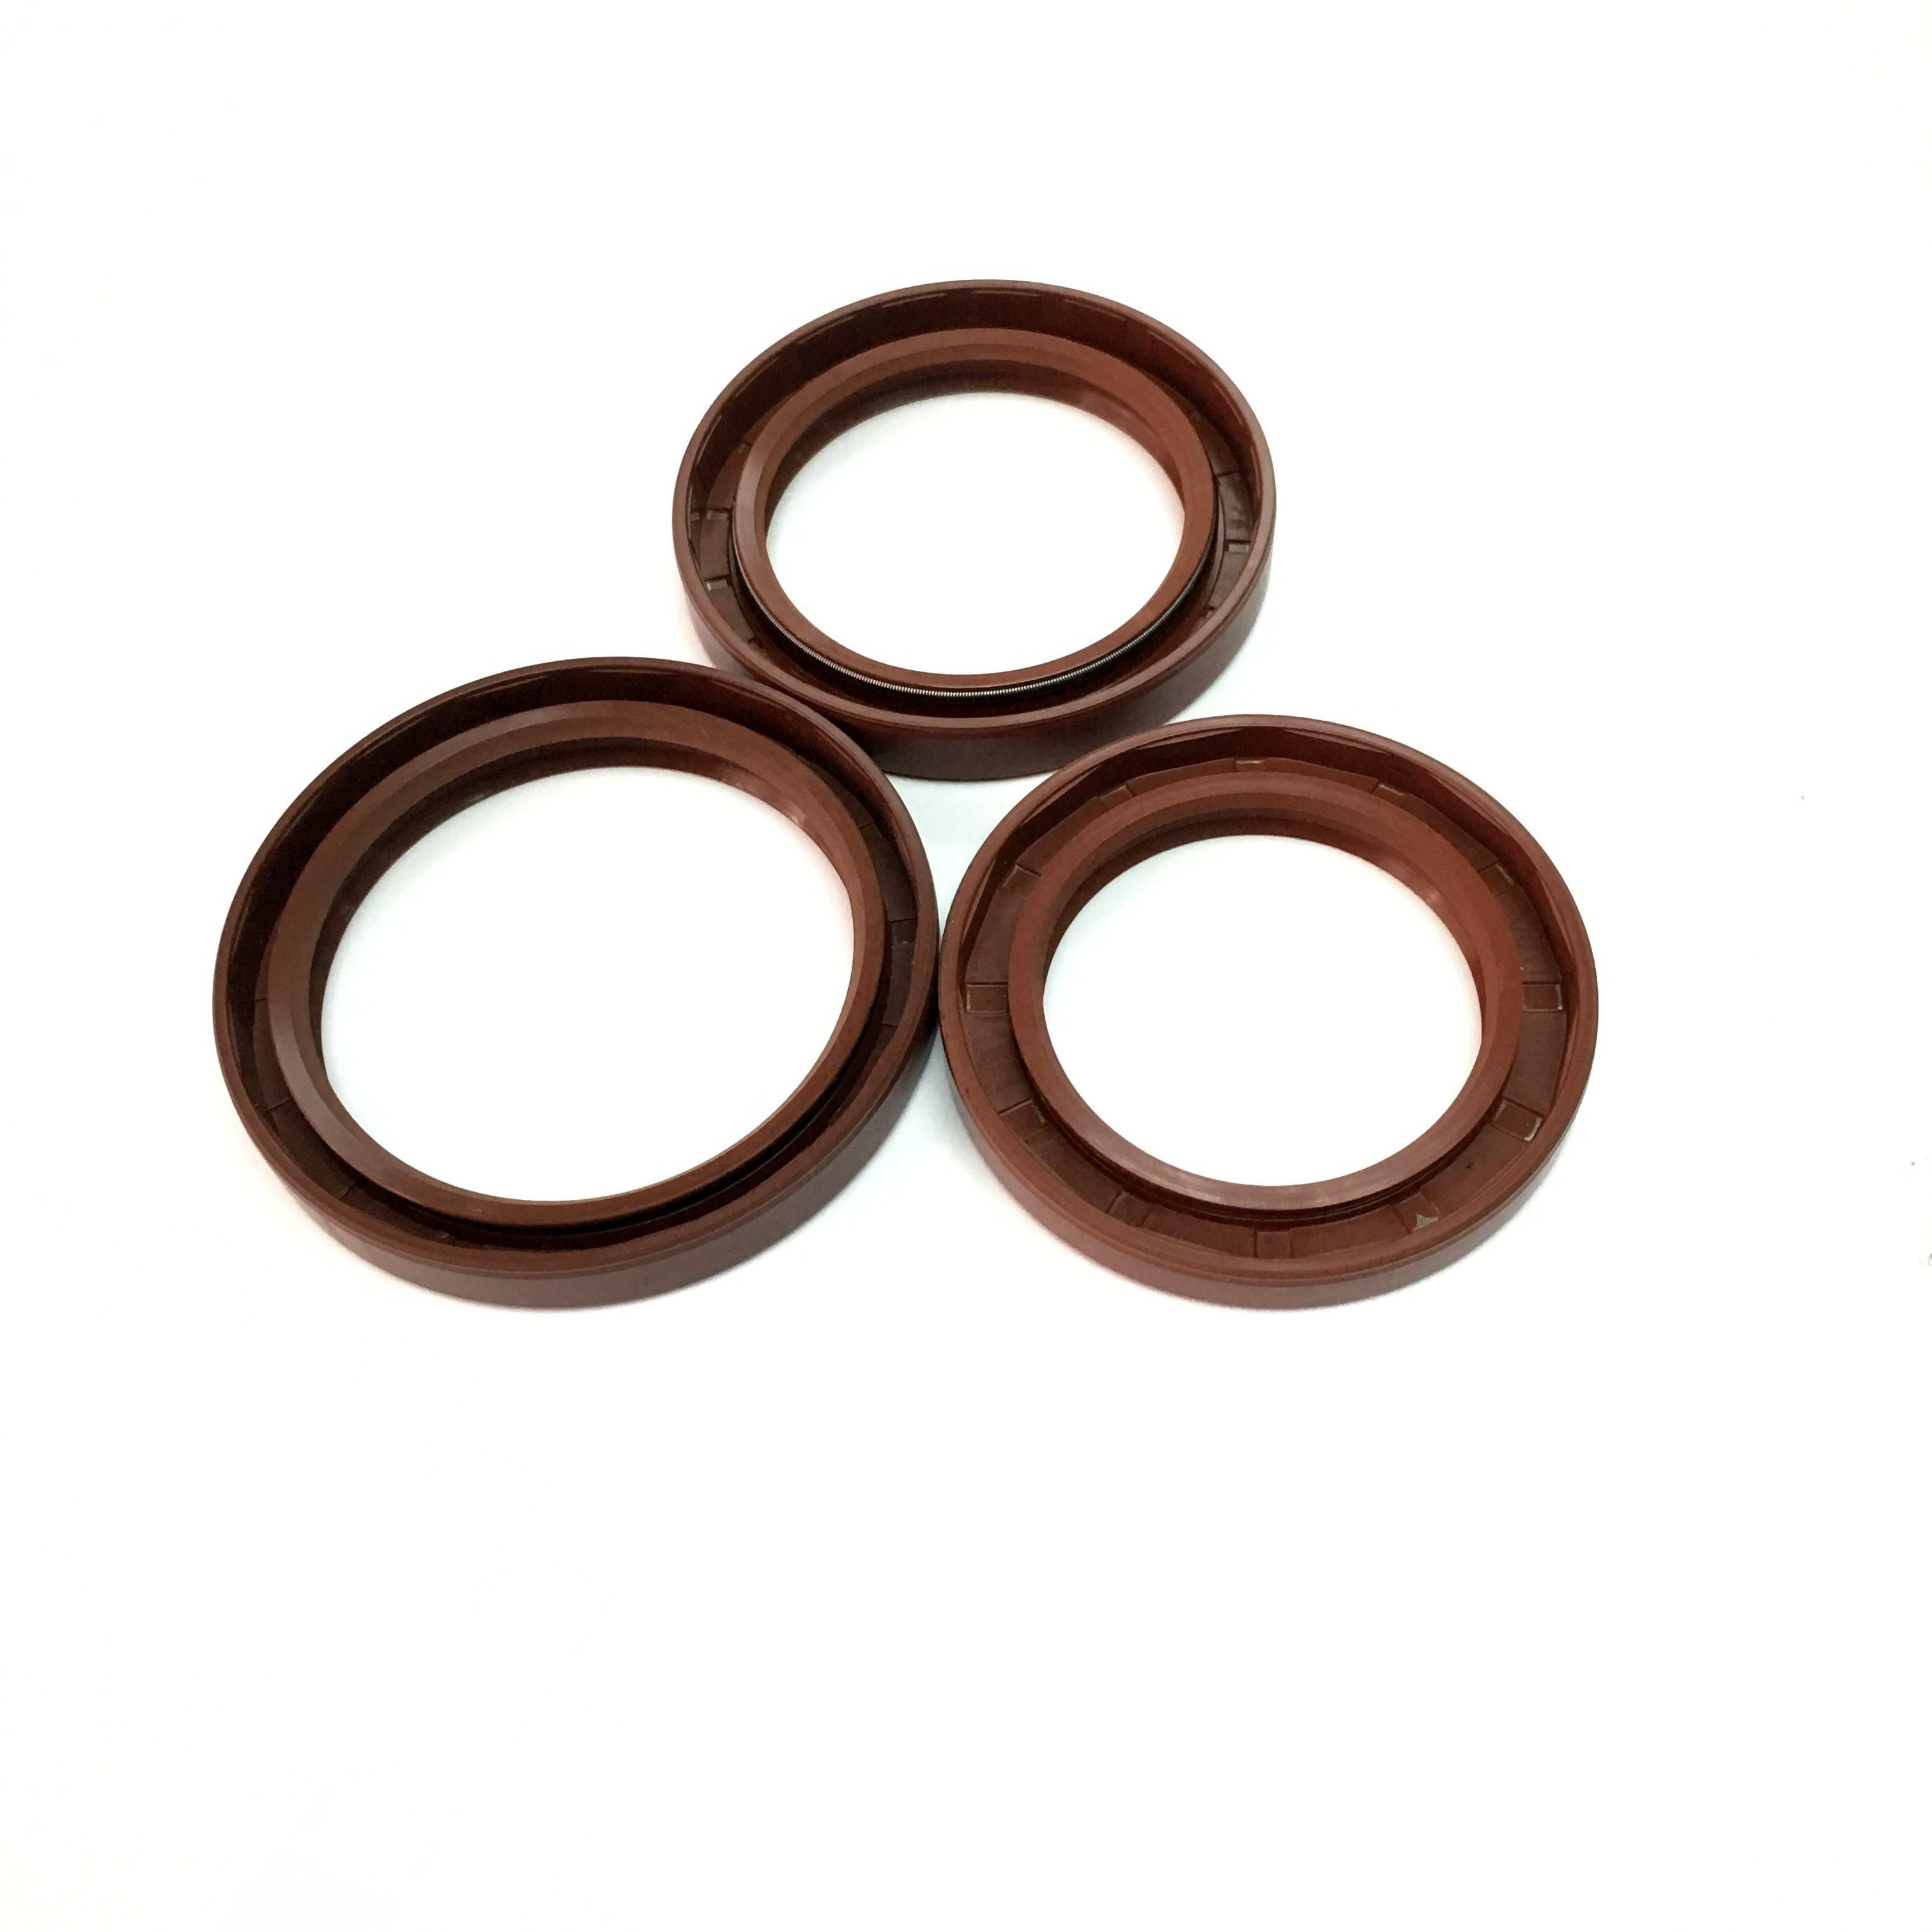 Double Lips Mechanical Oil Seal with Copmplete in Specifications